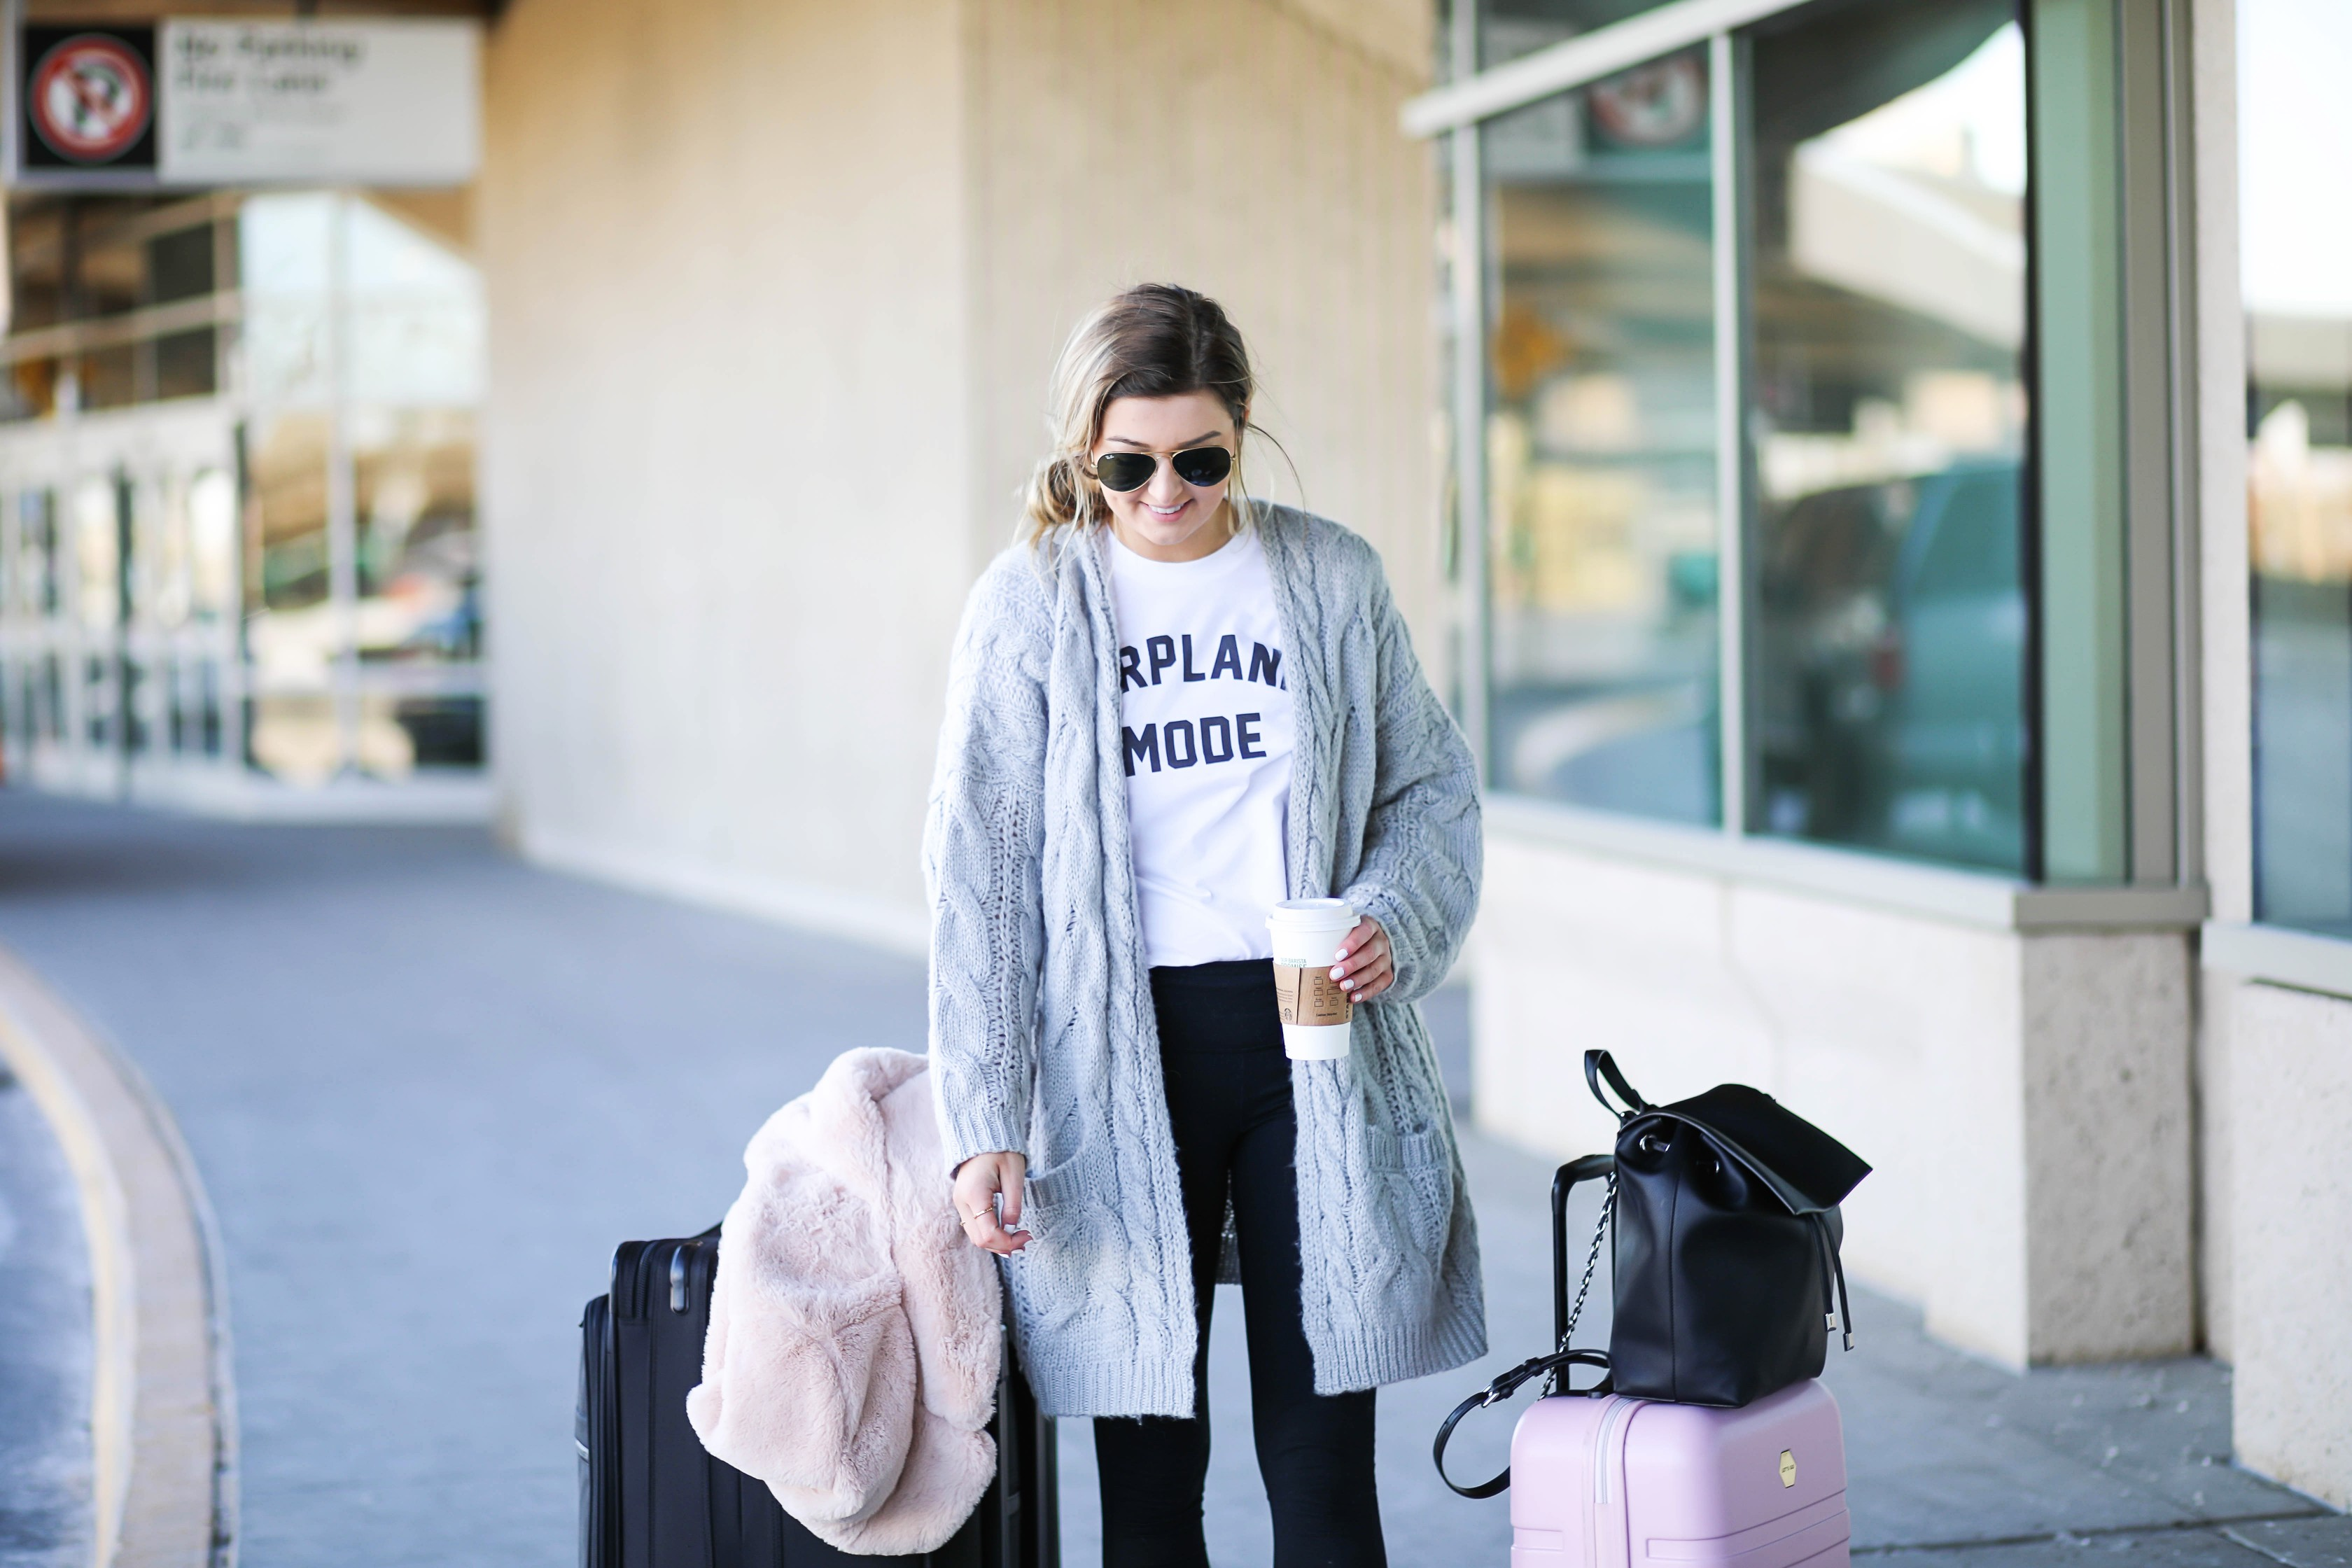 Airplane outfit! What to wear on an airplane. Artport style on fashion blog daily dose of charm by lauren lindmark